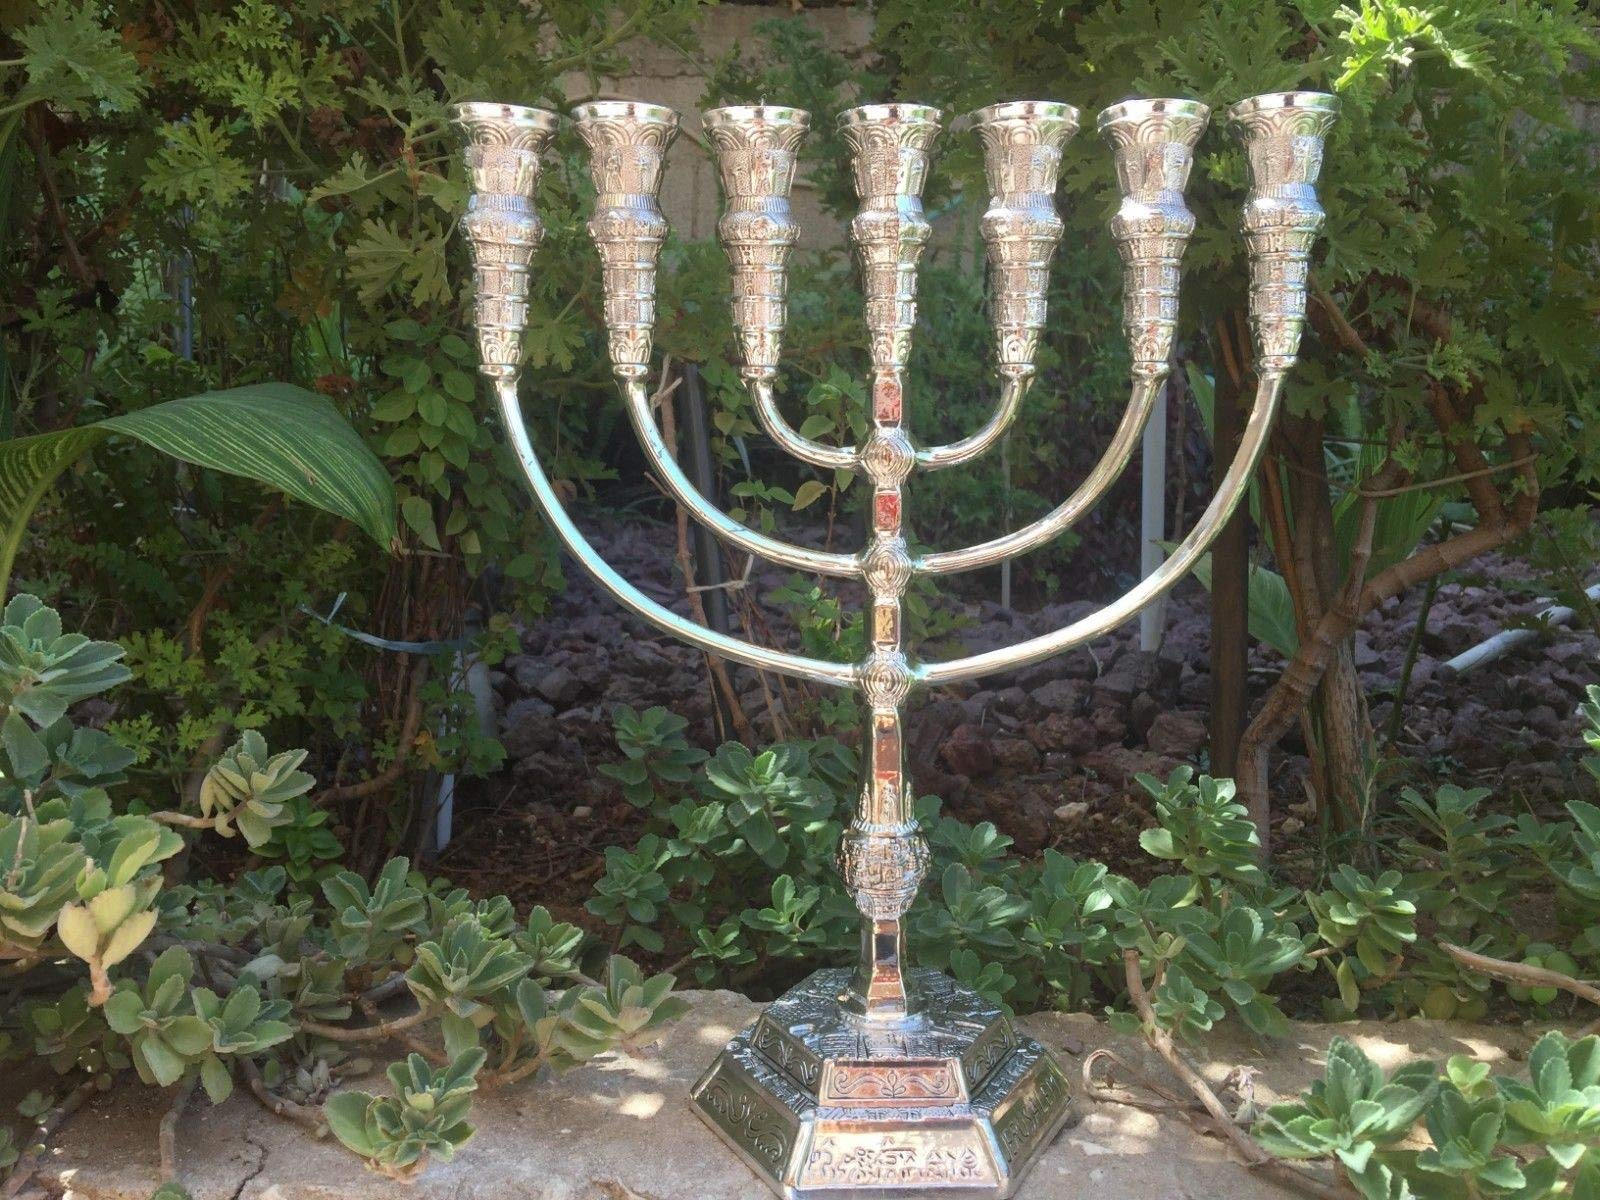 Yaliland Menorah Jerusalem Temple 14 Inch Height 35 cm 7 Branches Silver Plated XL by Yaliland (Image #3)